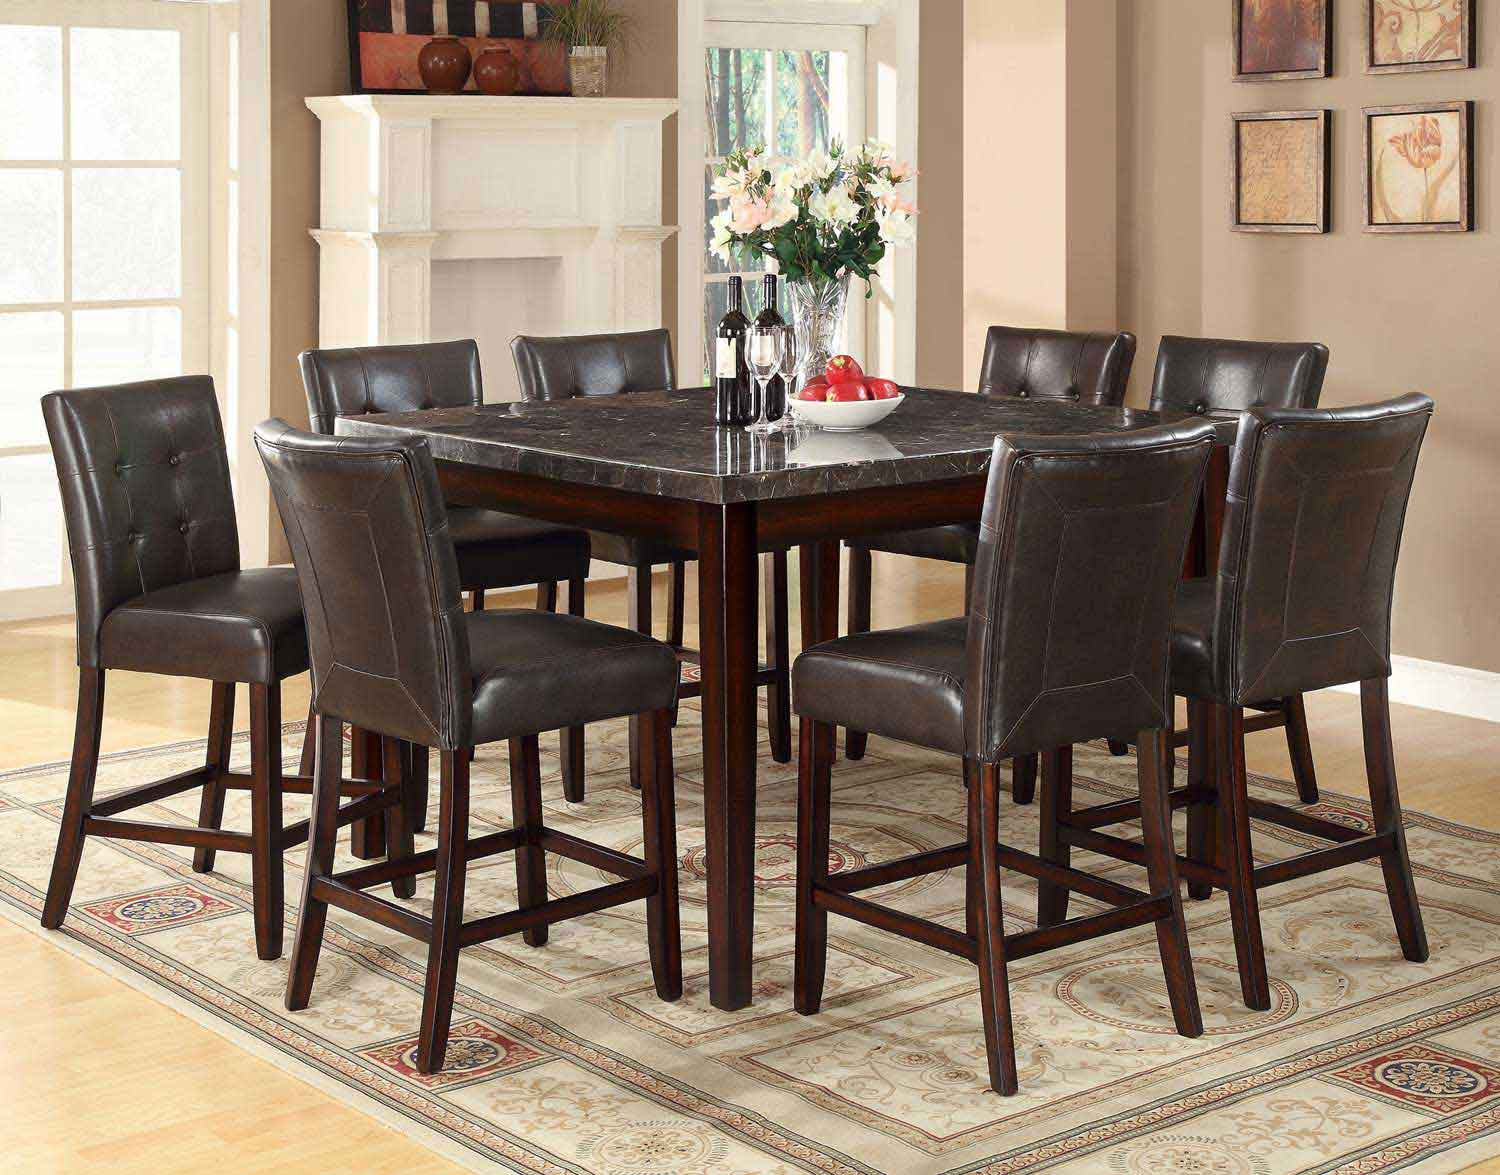 Coaster Milton Square Counter Height Dining Set - Dark Top - Cappuccino